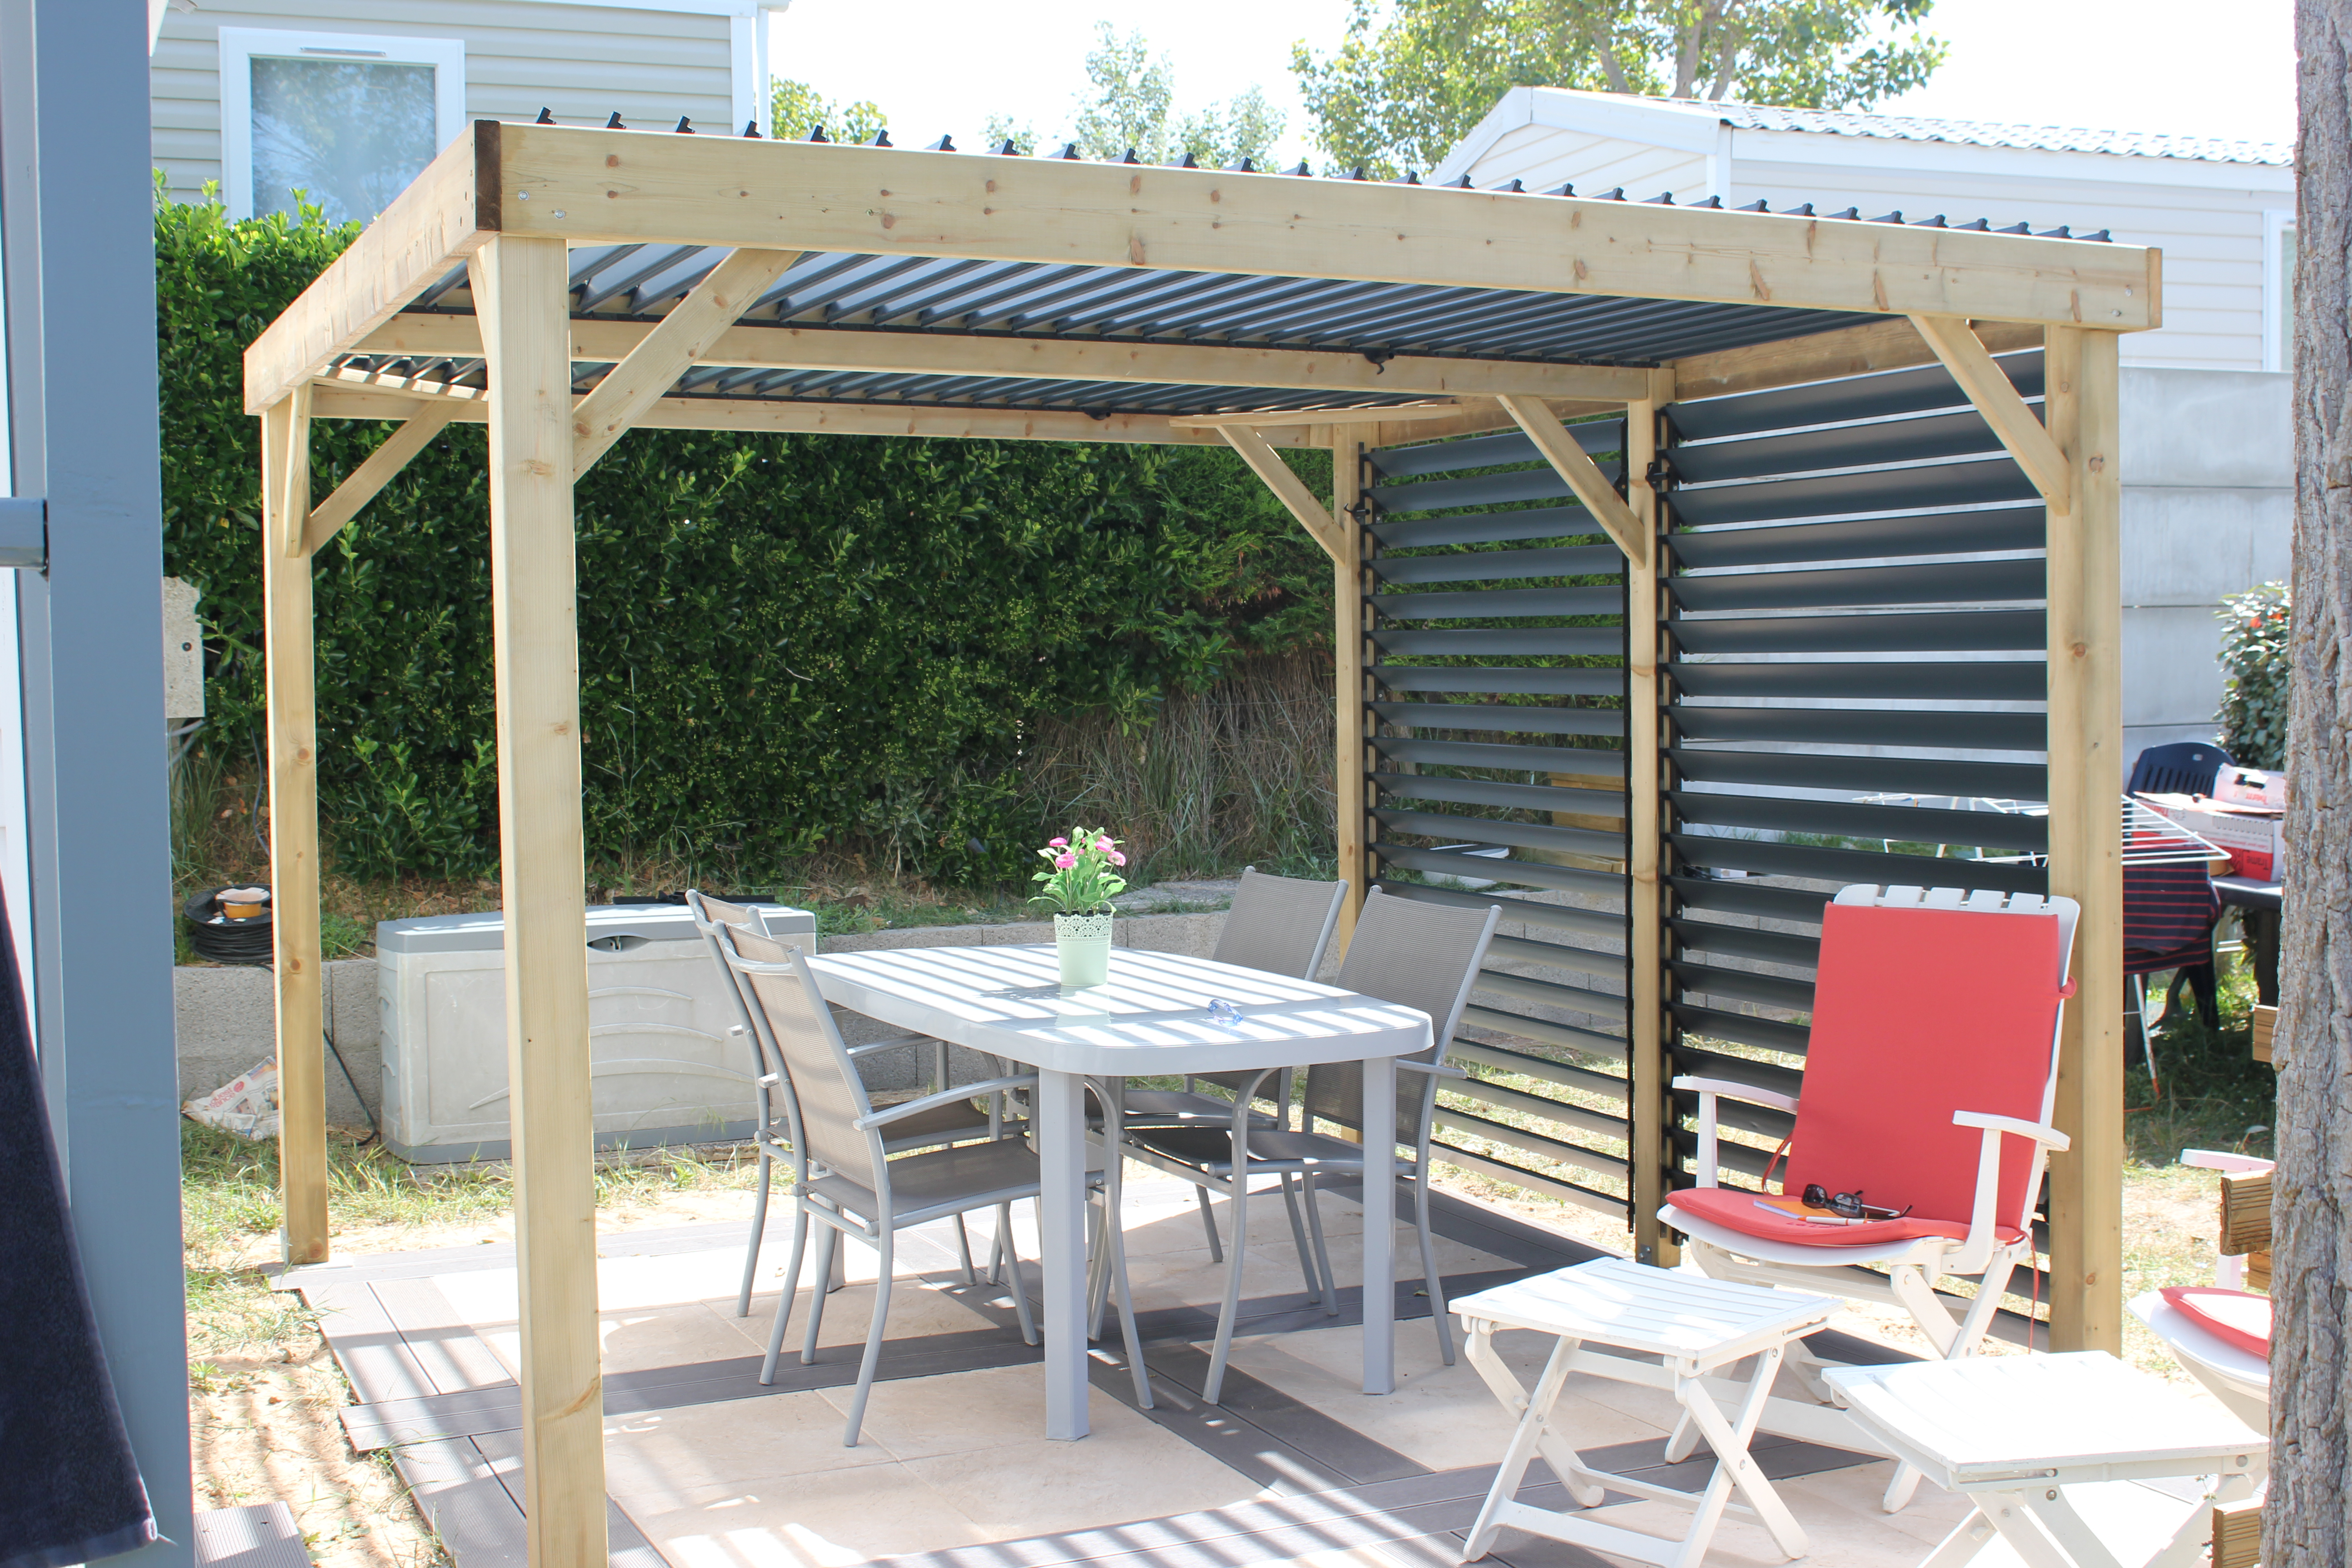 13_PERGOLA_MIXTE_-_Copie[1]